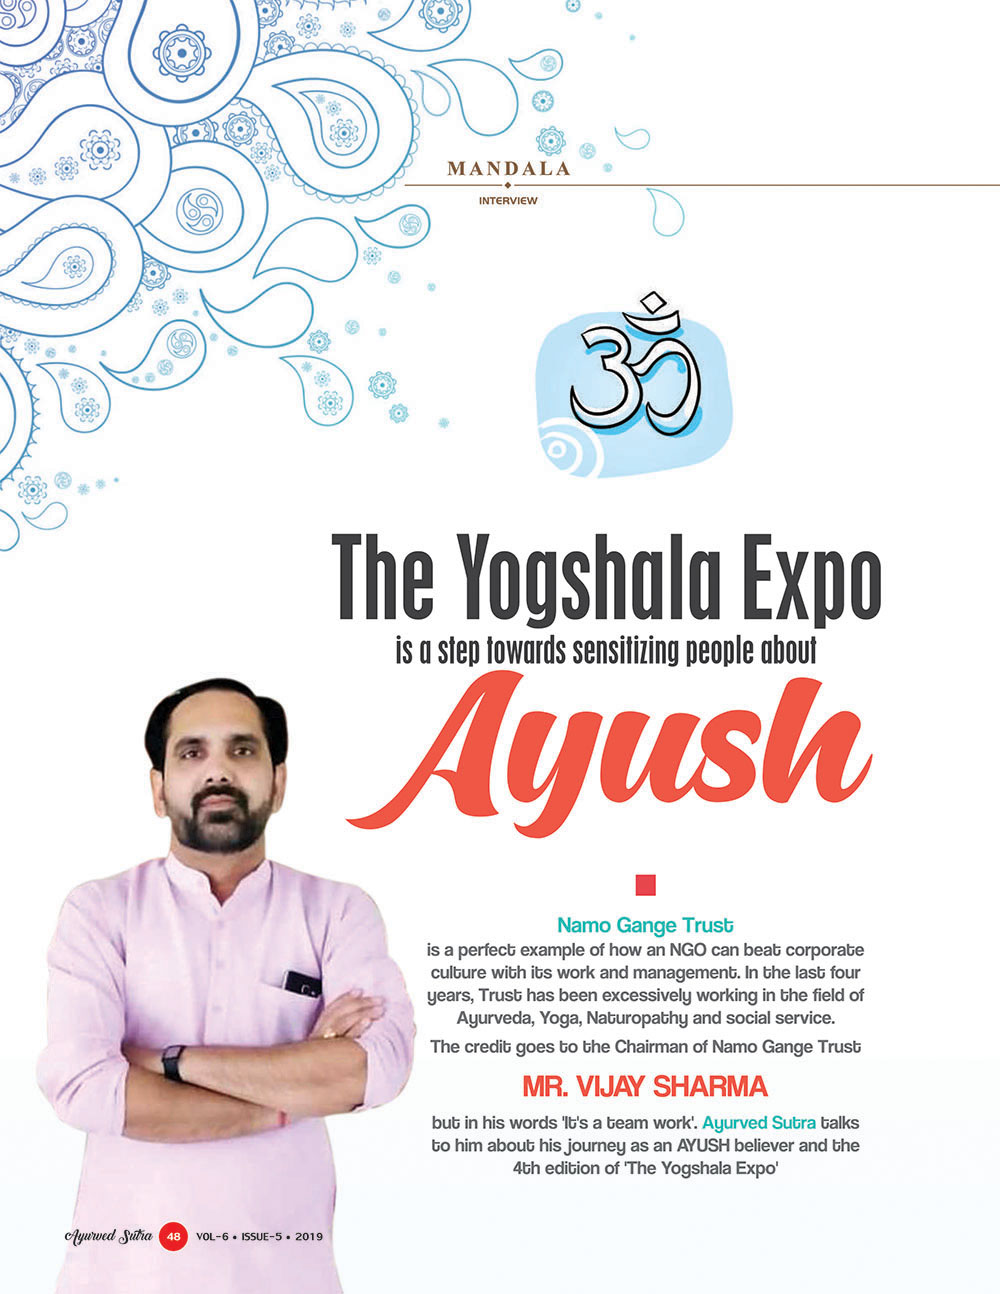 Ayurvedsutra Vol 06 issue 05 50 - The Yogshala Expo is a step towards sensitizing people about AYUSH